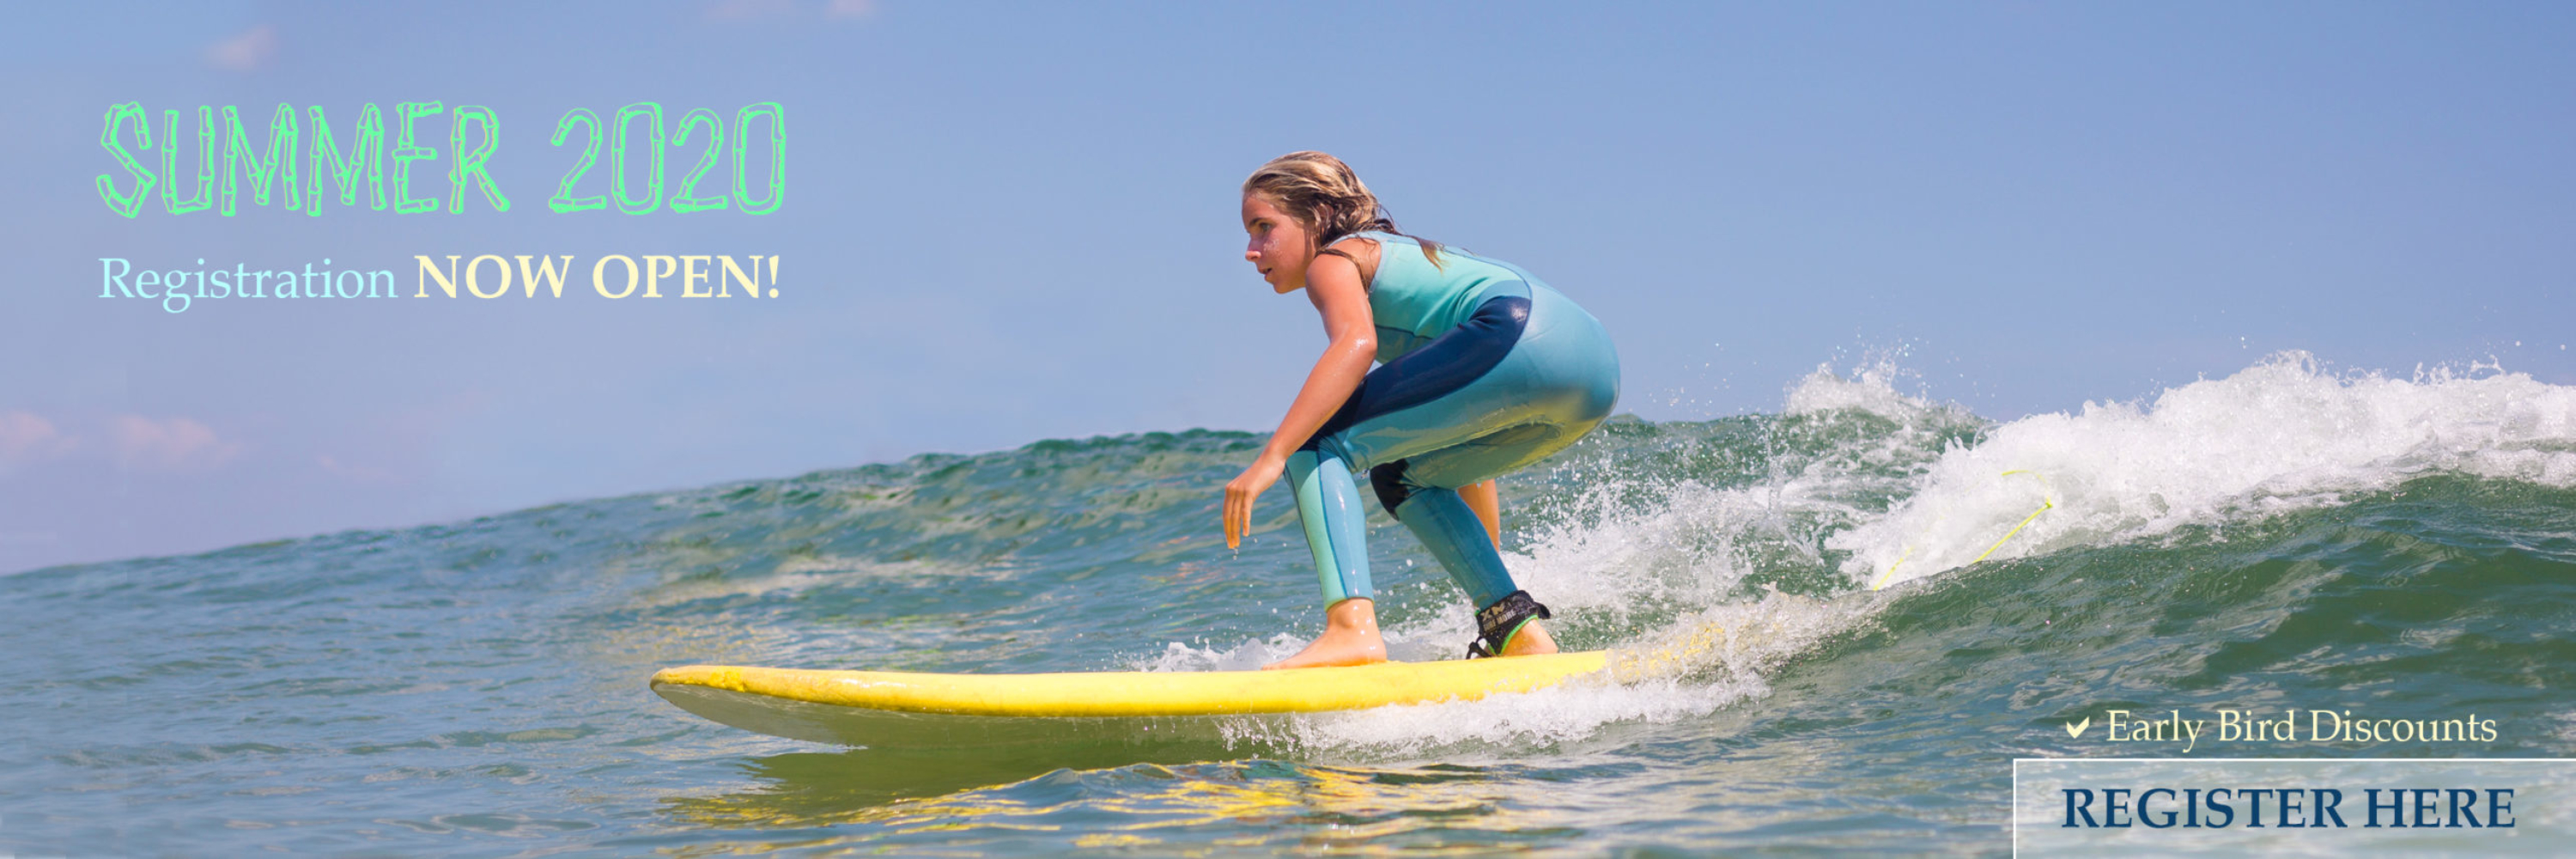 Register for surf camp, Long Branch, Deal, NJ, surf school, yoga, pizza party, birthday parties